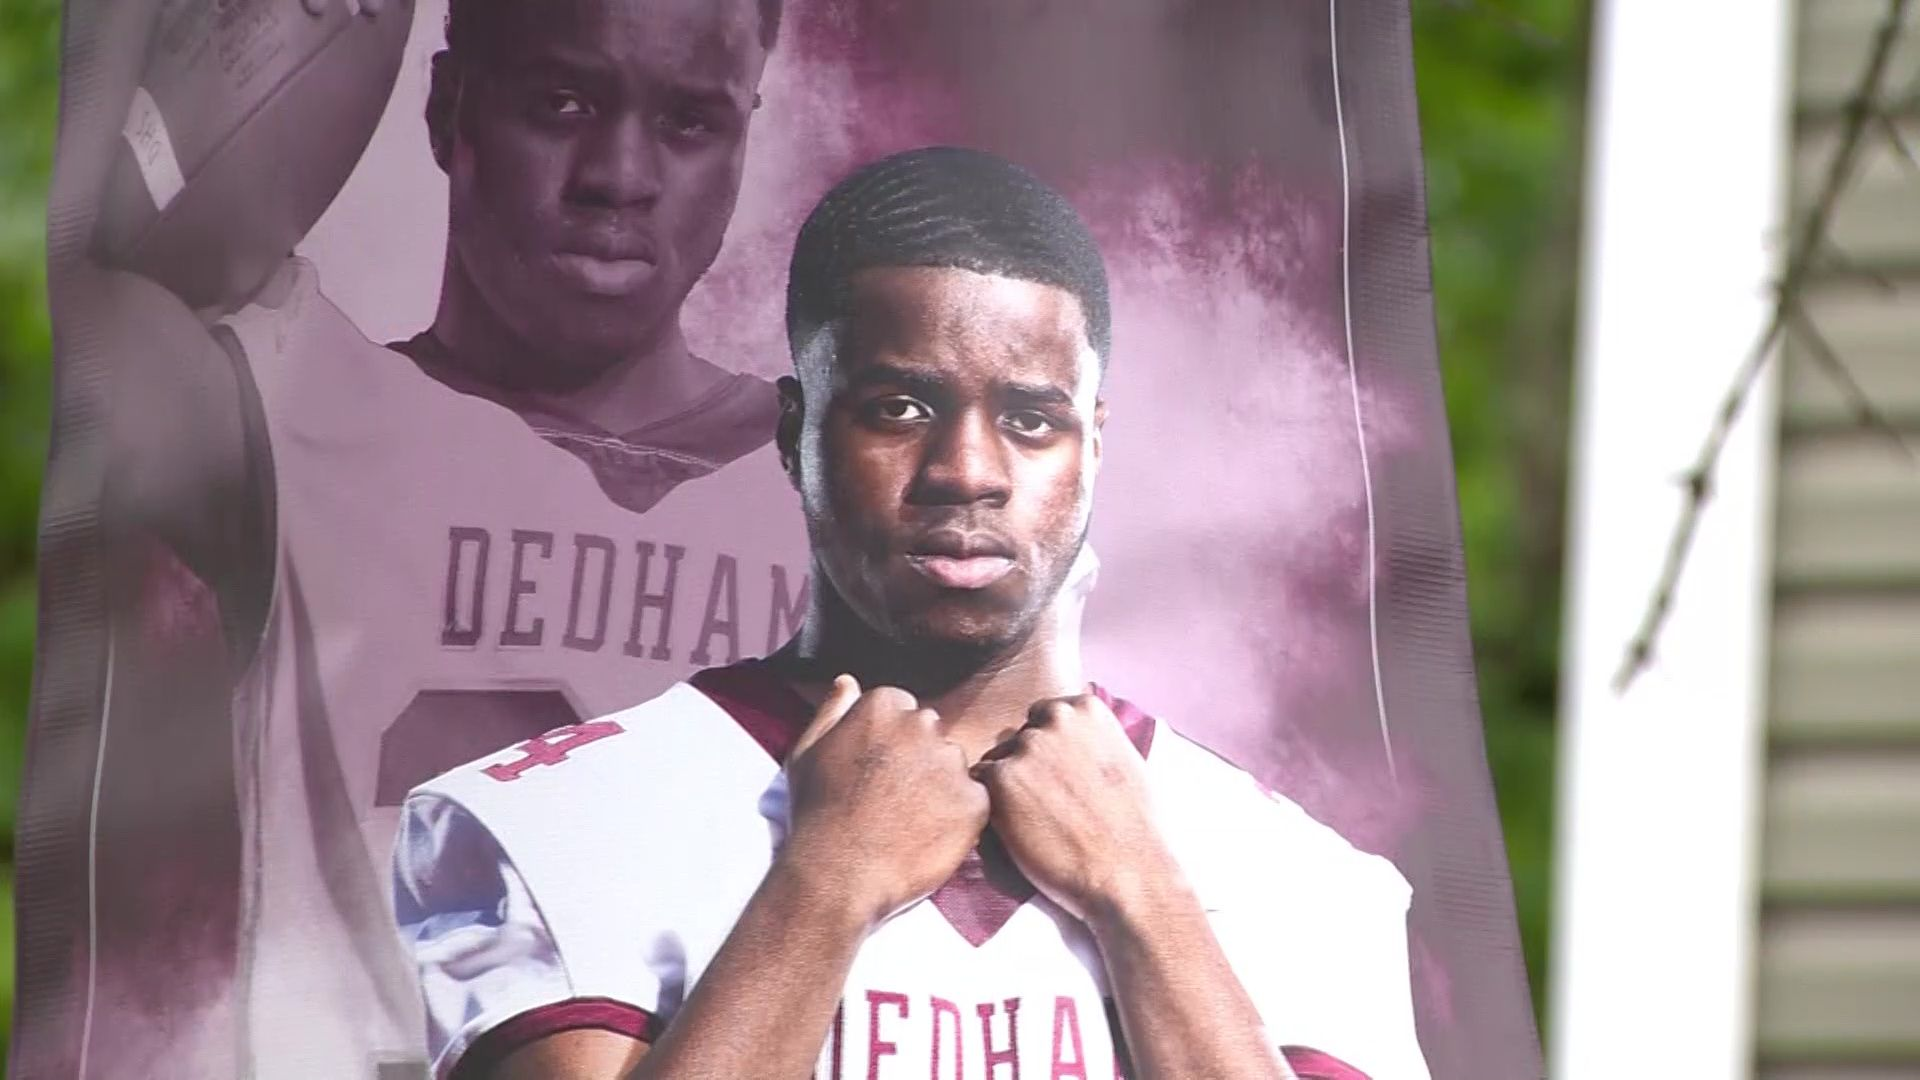 'Justice for Alonzo;' Family demands answers after Dedham teen dies following grad party